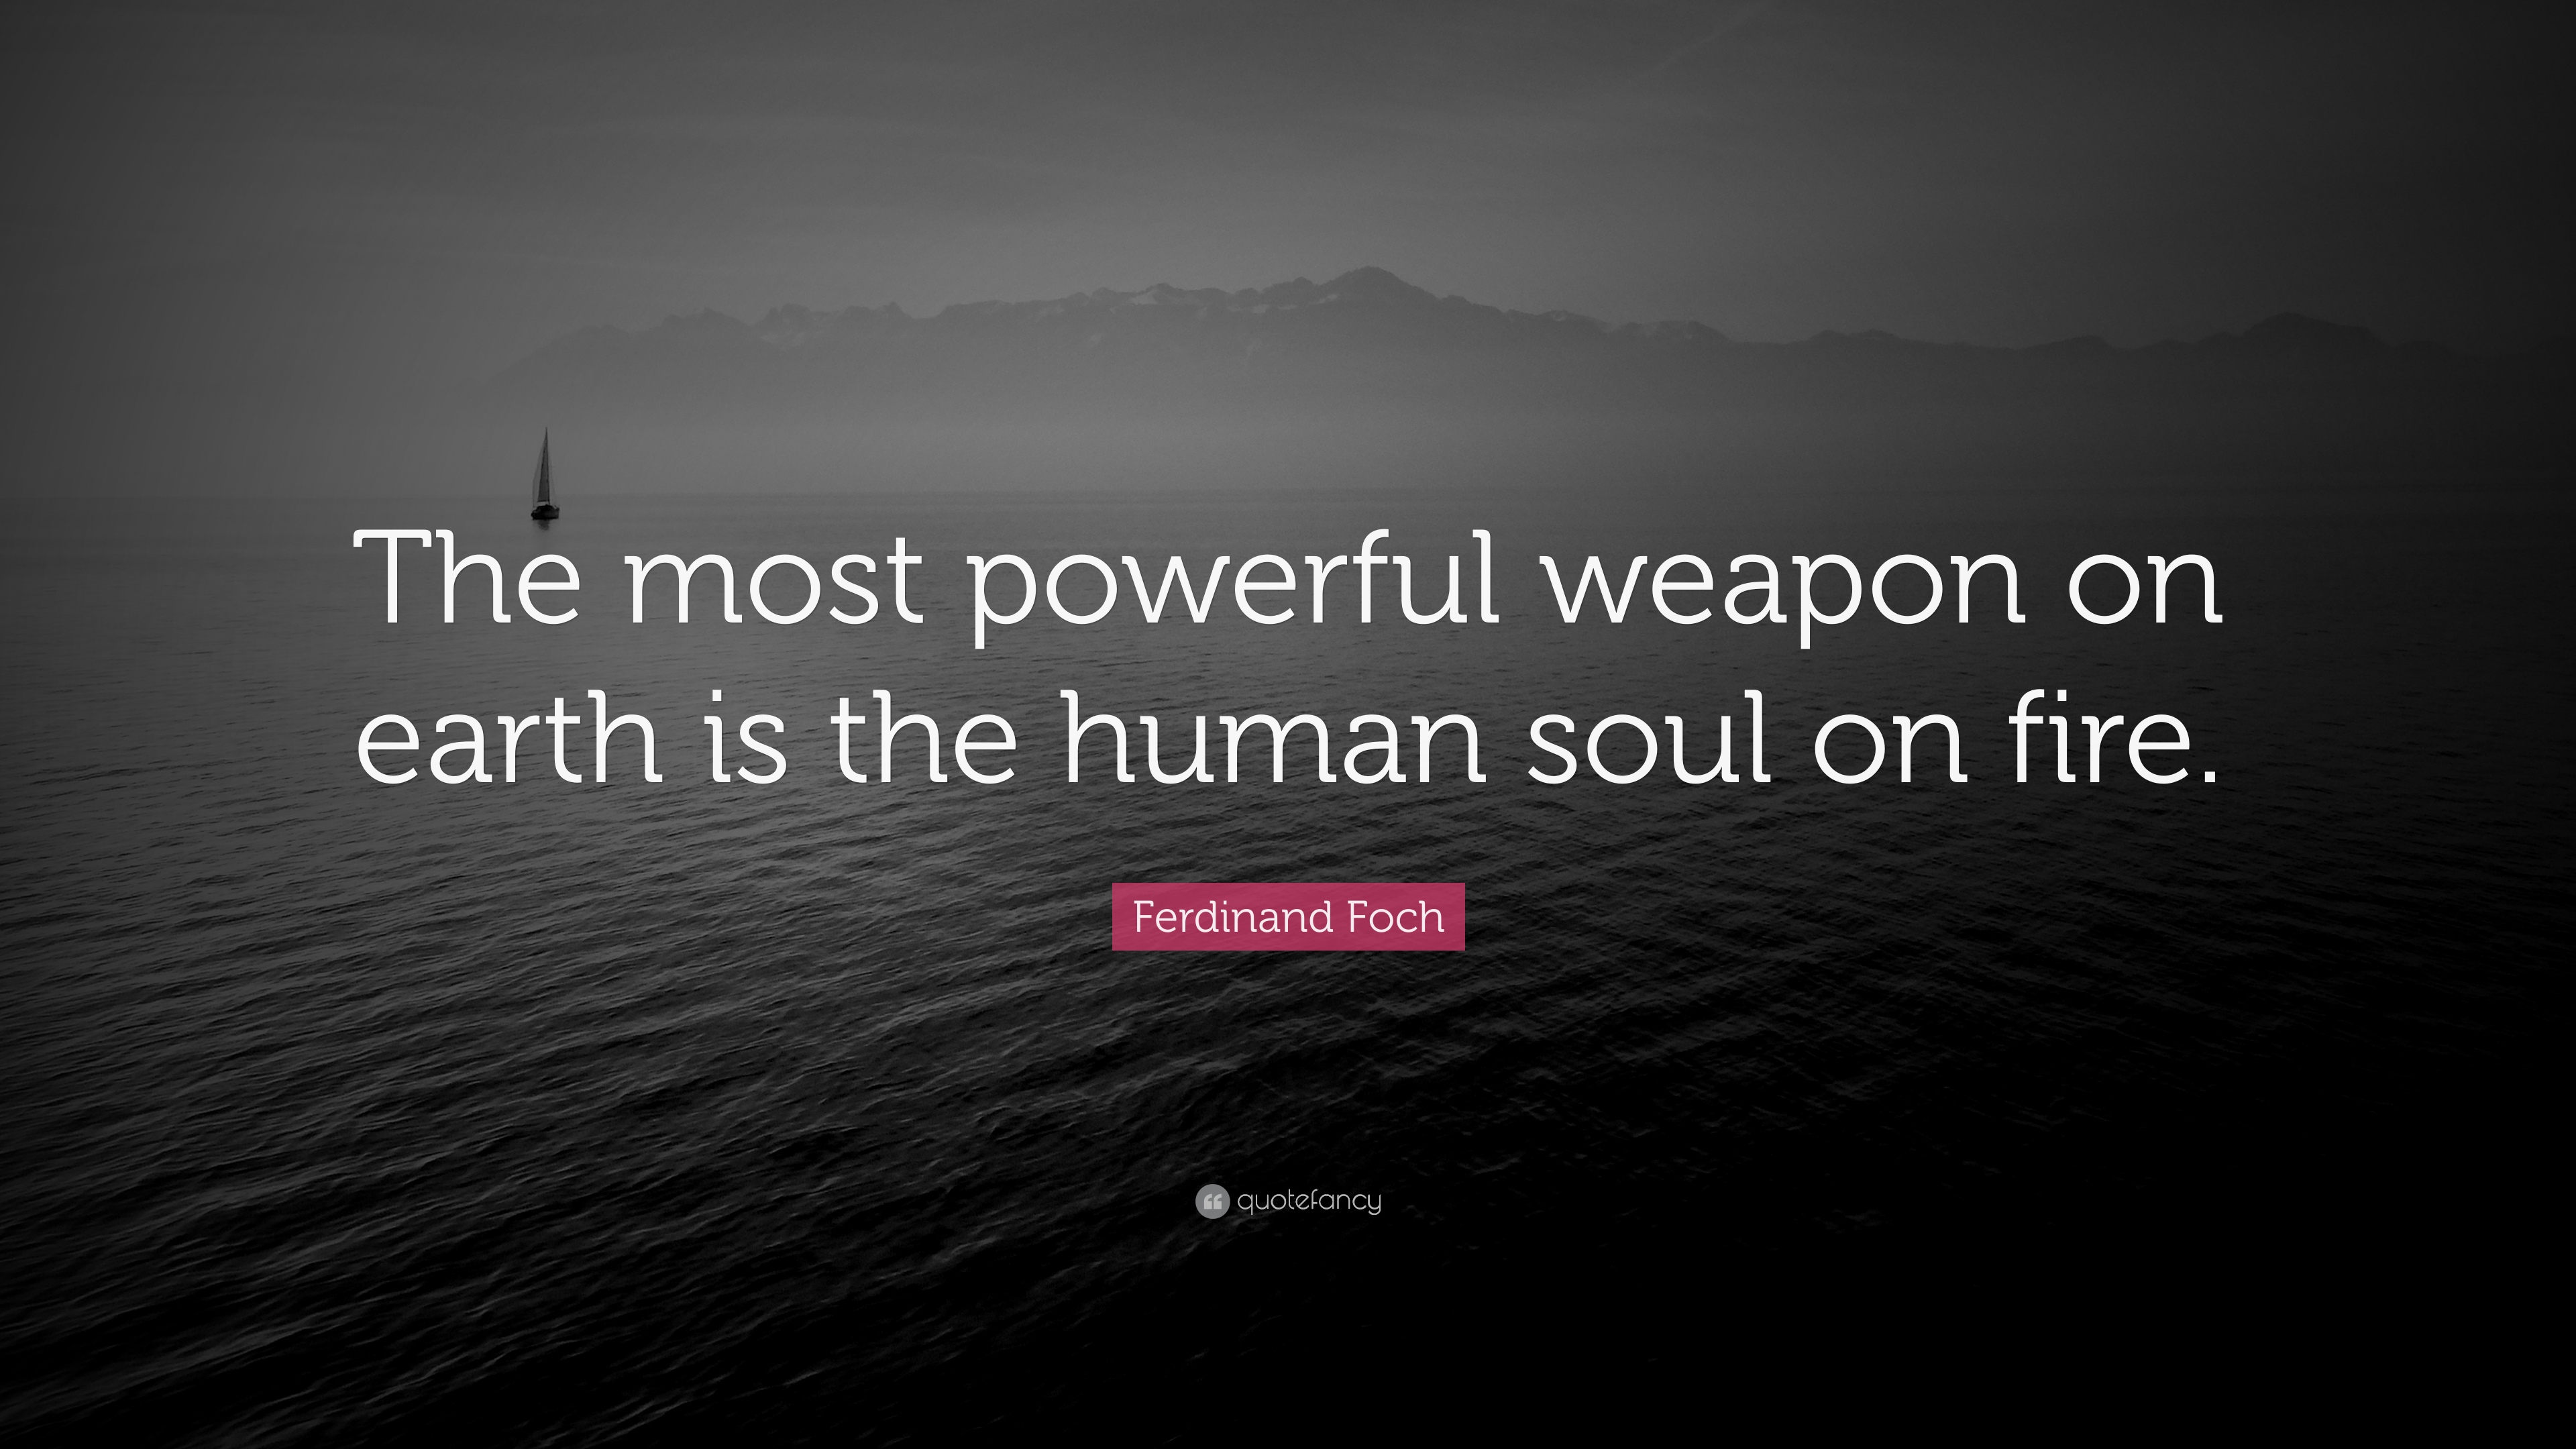 Ferdinand Foch The Most Powerful Weapon On Earth Is The: 1809966-Ferdinand-Foch-Quote-The-most-powerful-weapon-on